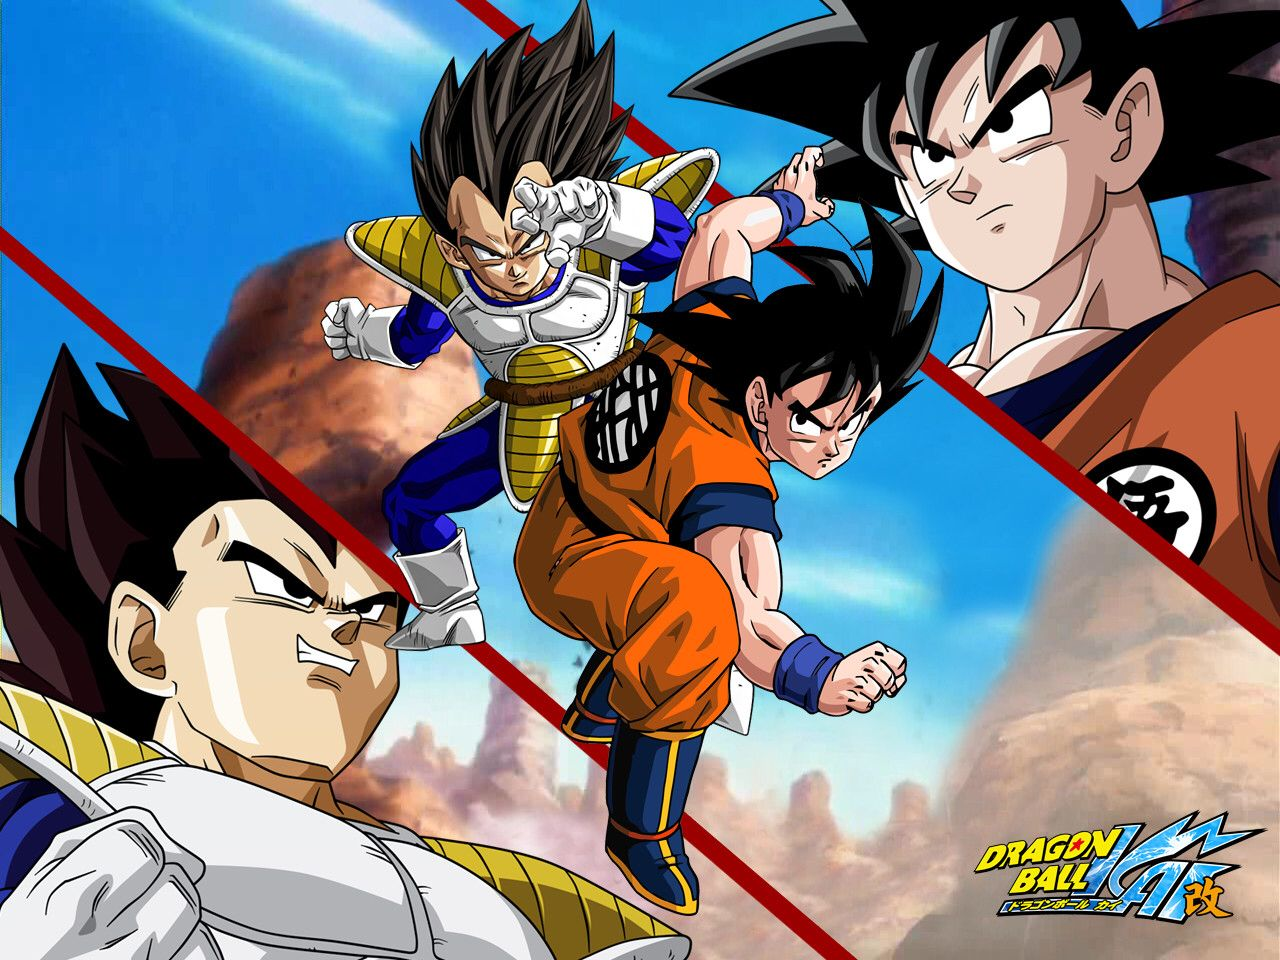 Beam Struggle 9 goku and vegeta face off! the whole scene before they